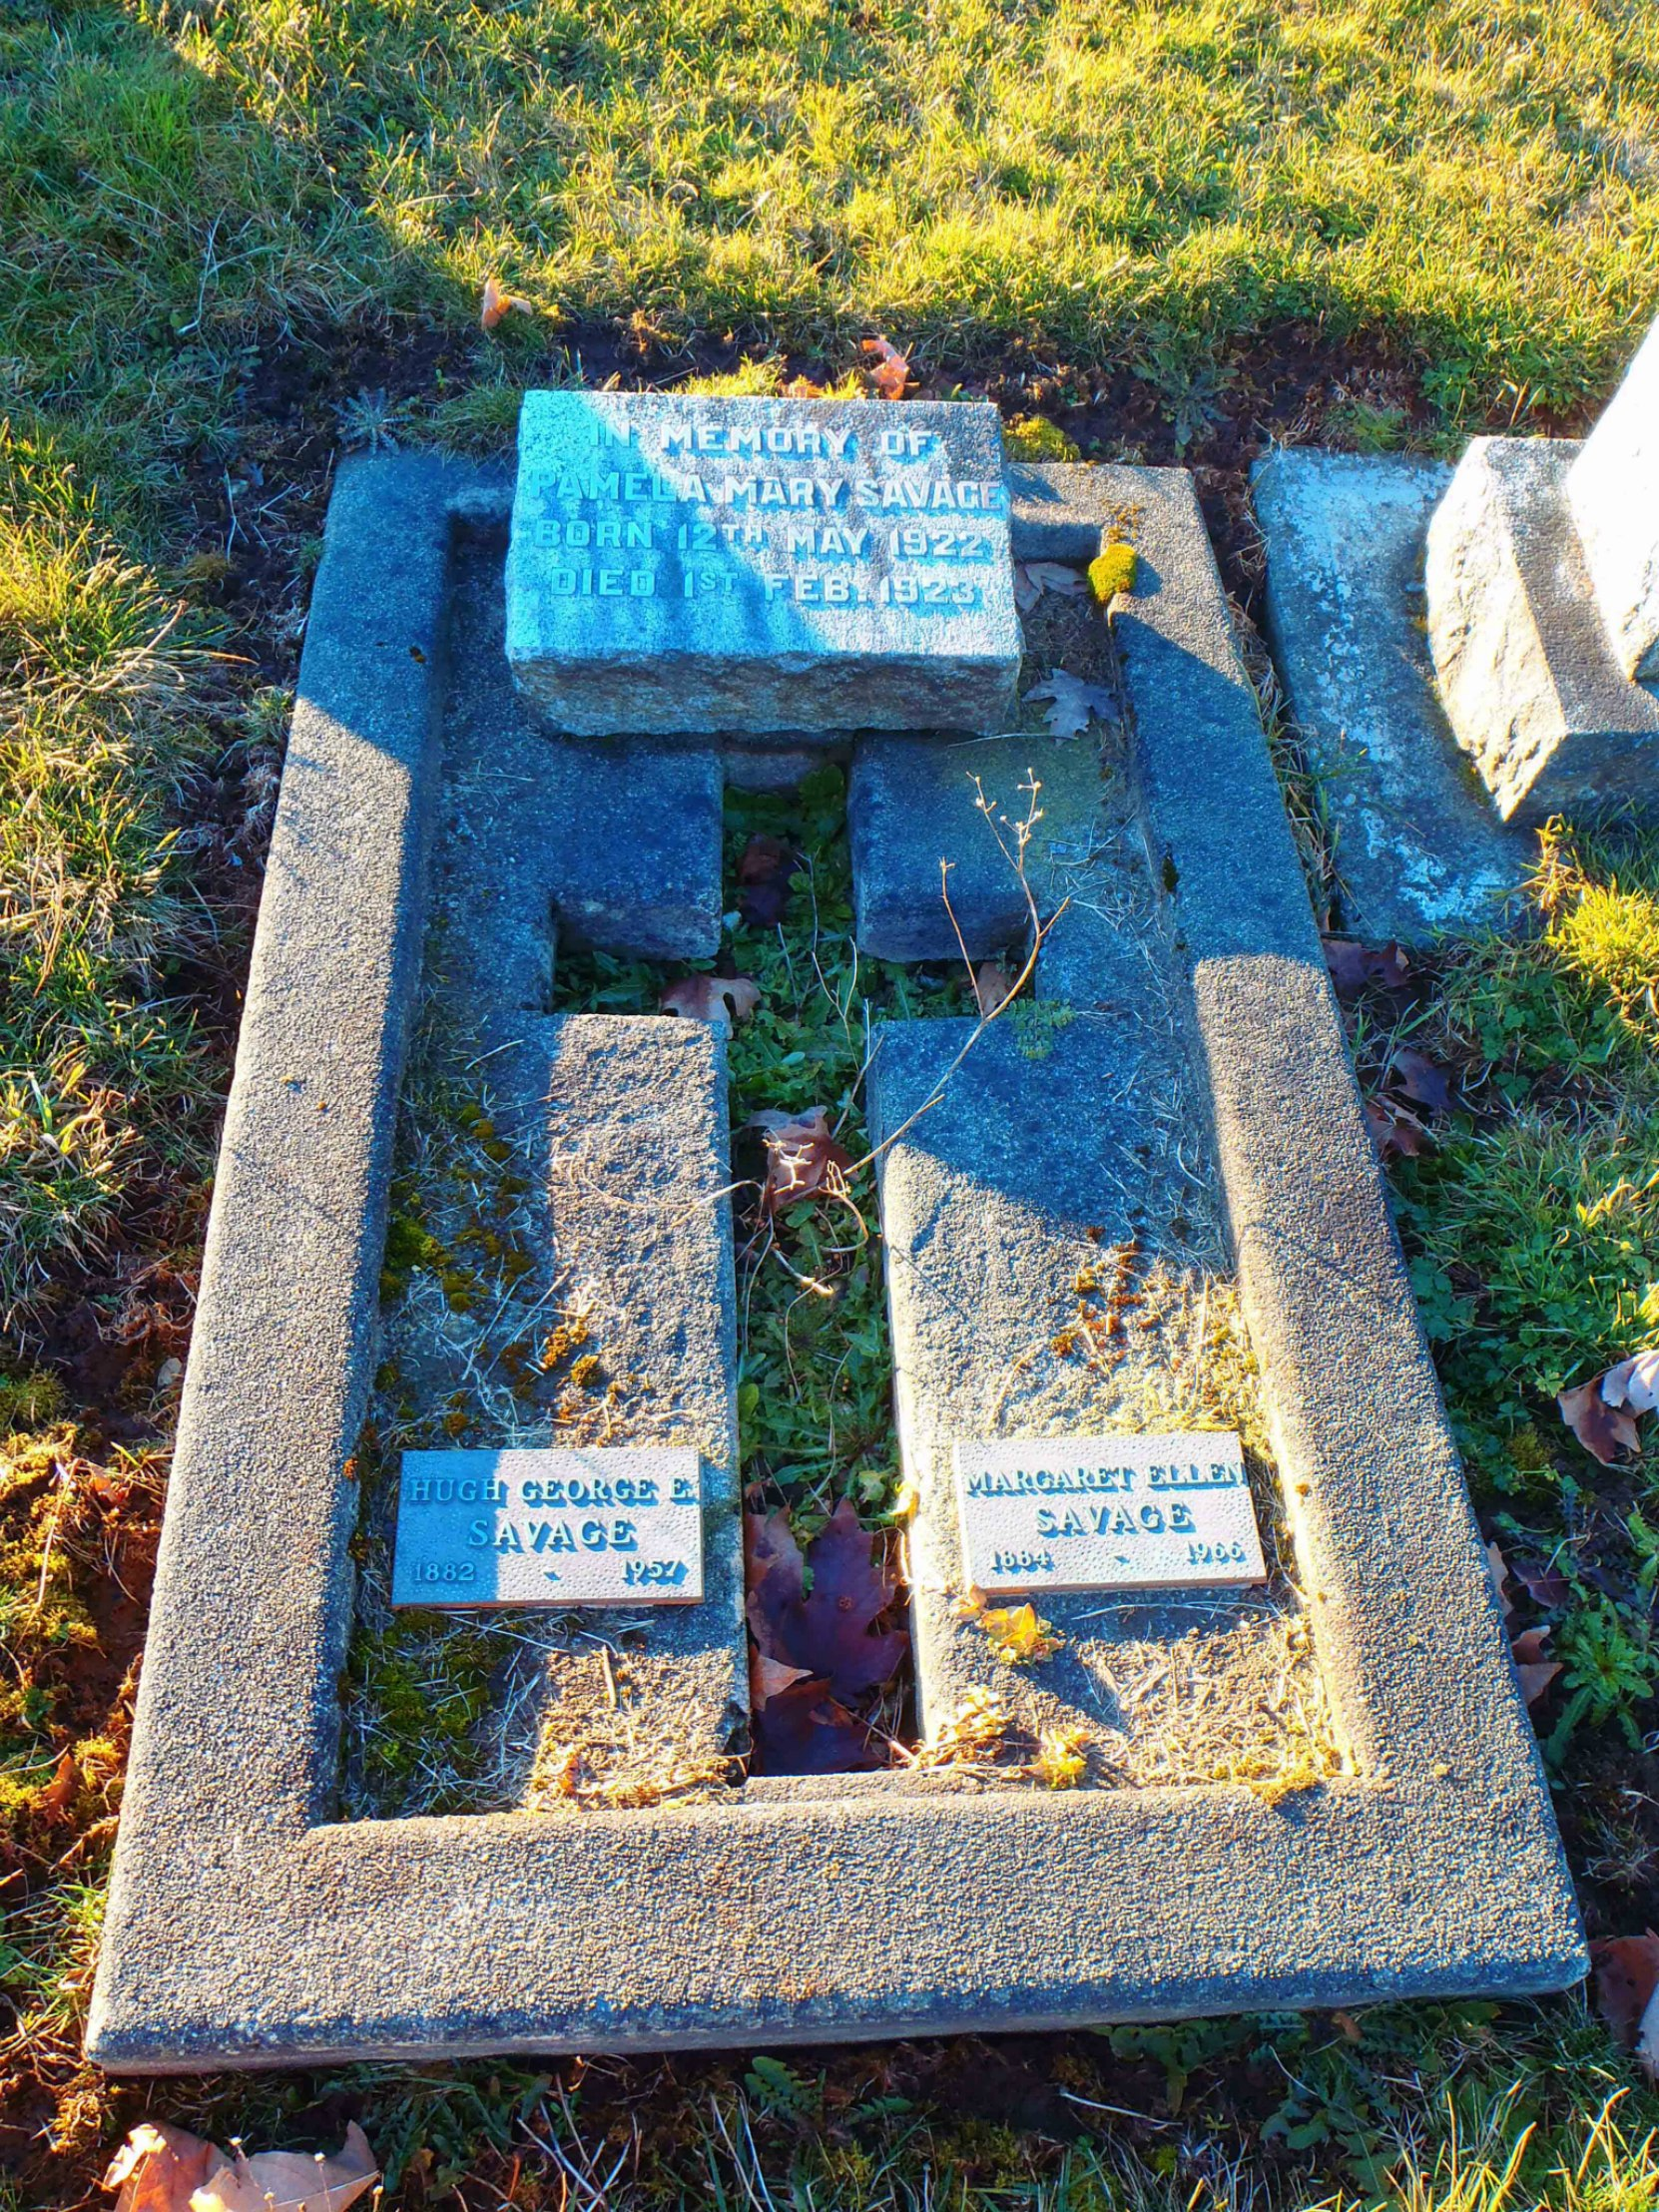 Hugh George Savage, family grave, St. Mary's Somenos cemetery, North Cowichan